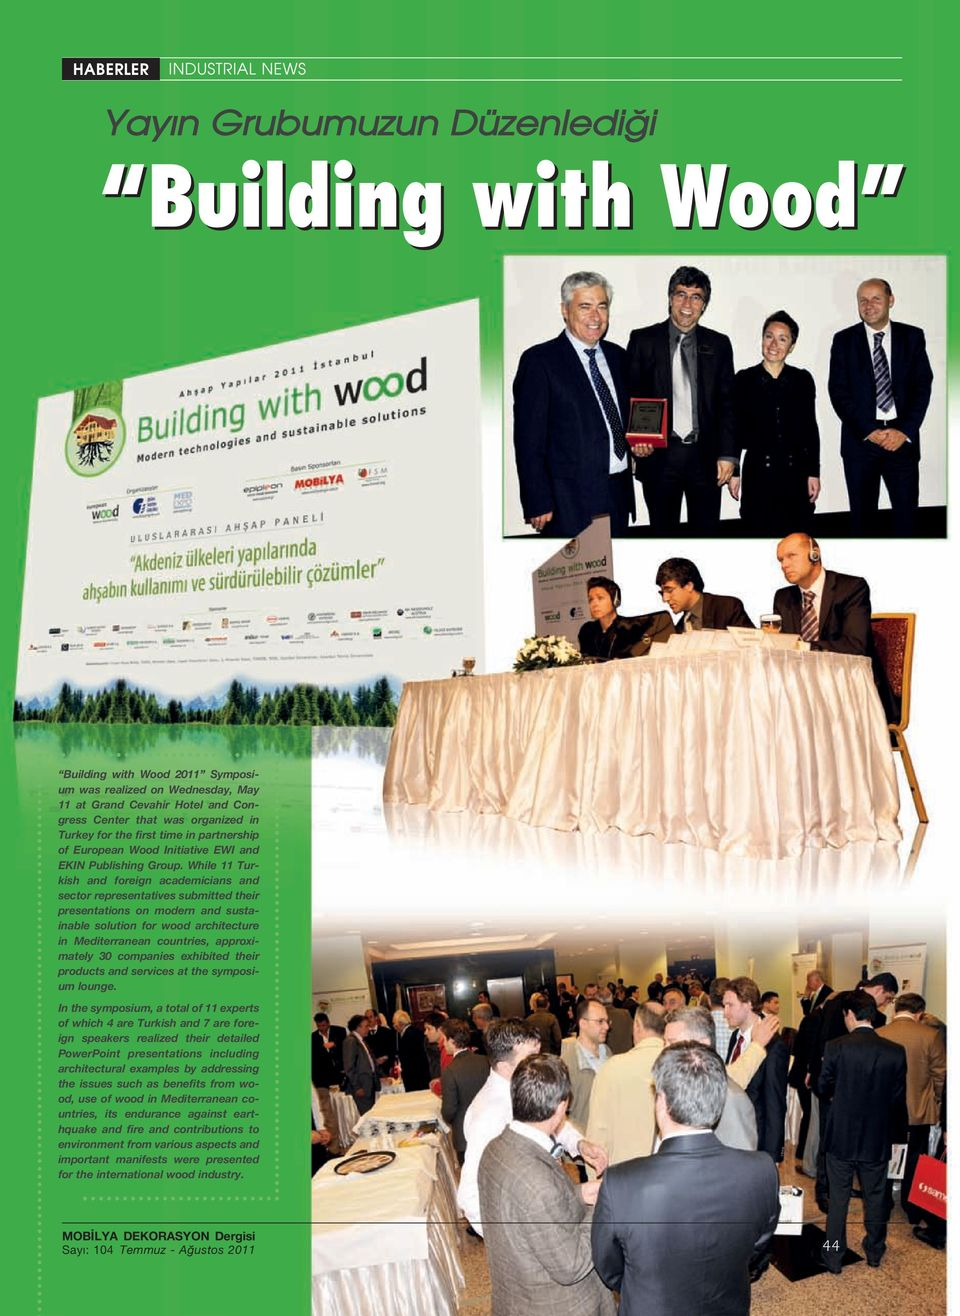 While 11 Turkish and foreign academicians and sector representatives submitted their presentations on modern and sustainable solution for wood architecture in Mediterranean countries, approximately